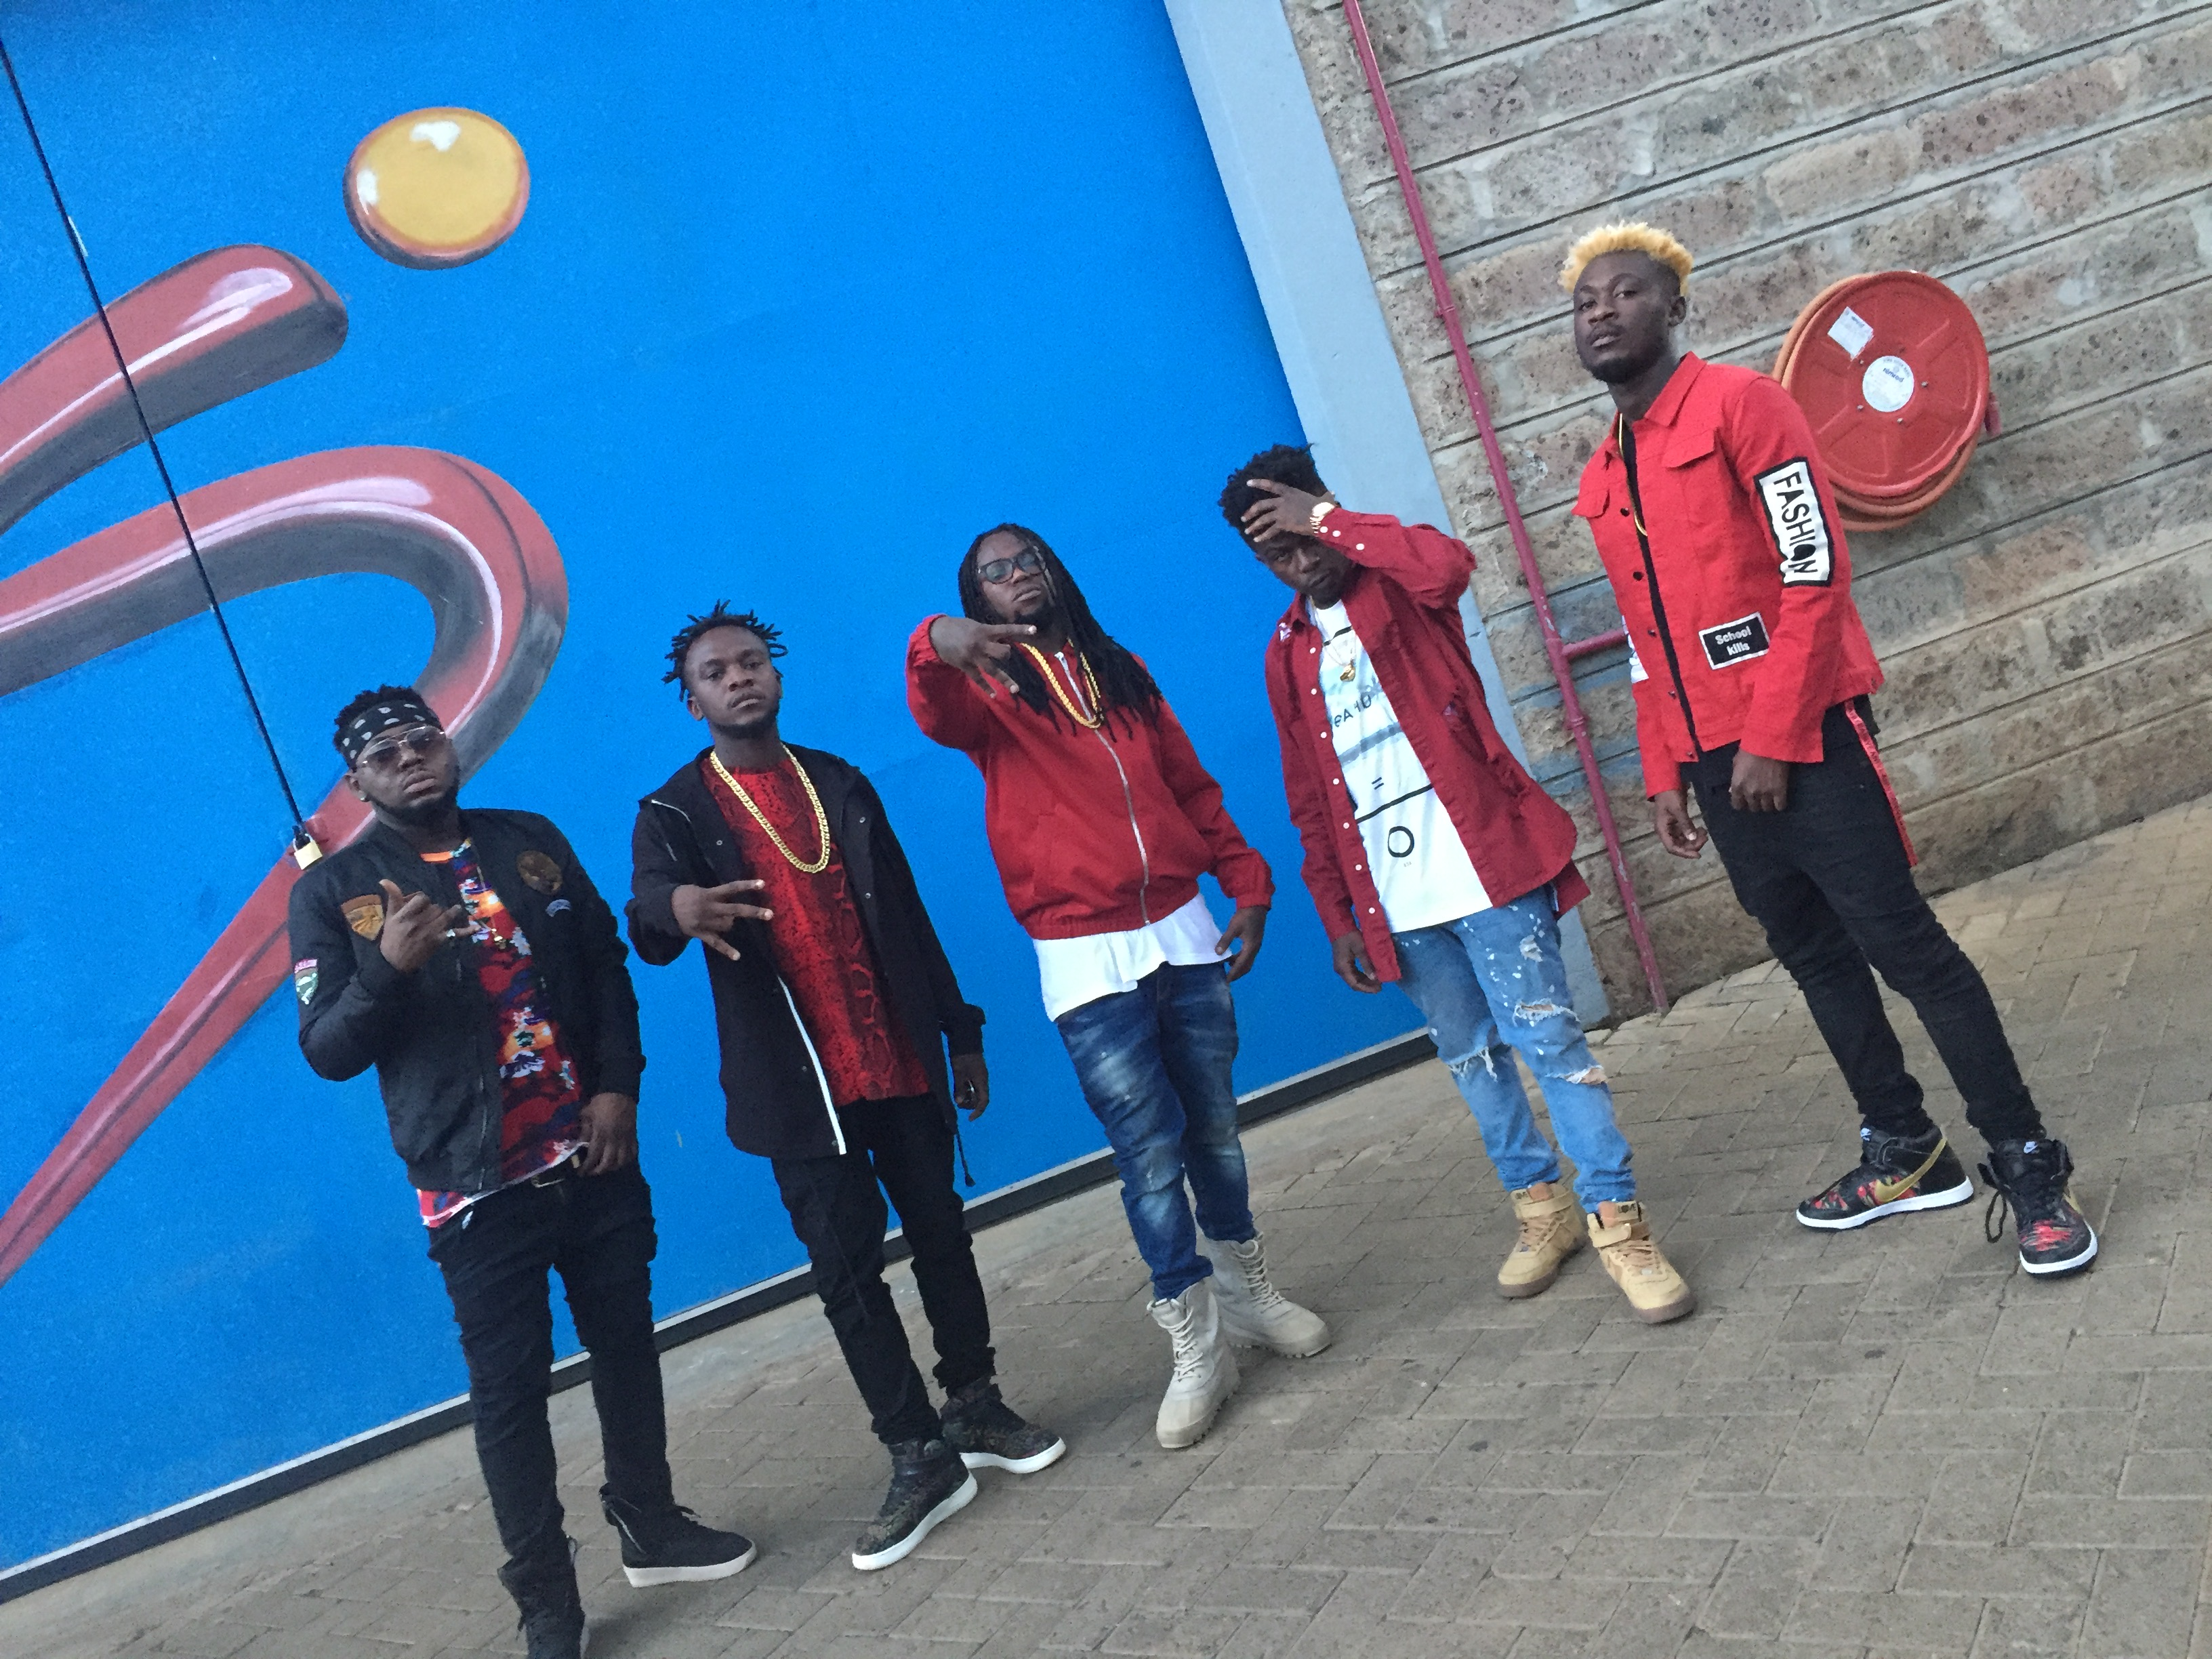 Coke studio africa kiff no beat partage son exp rience for Chambre 13 kiff no beat parole